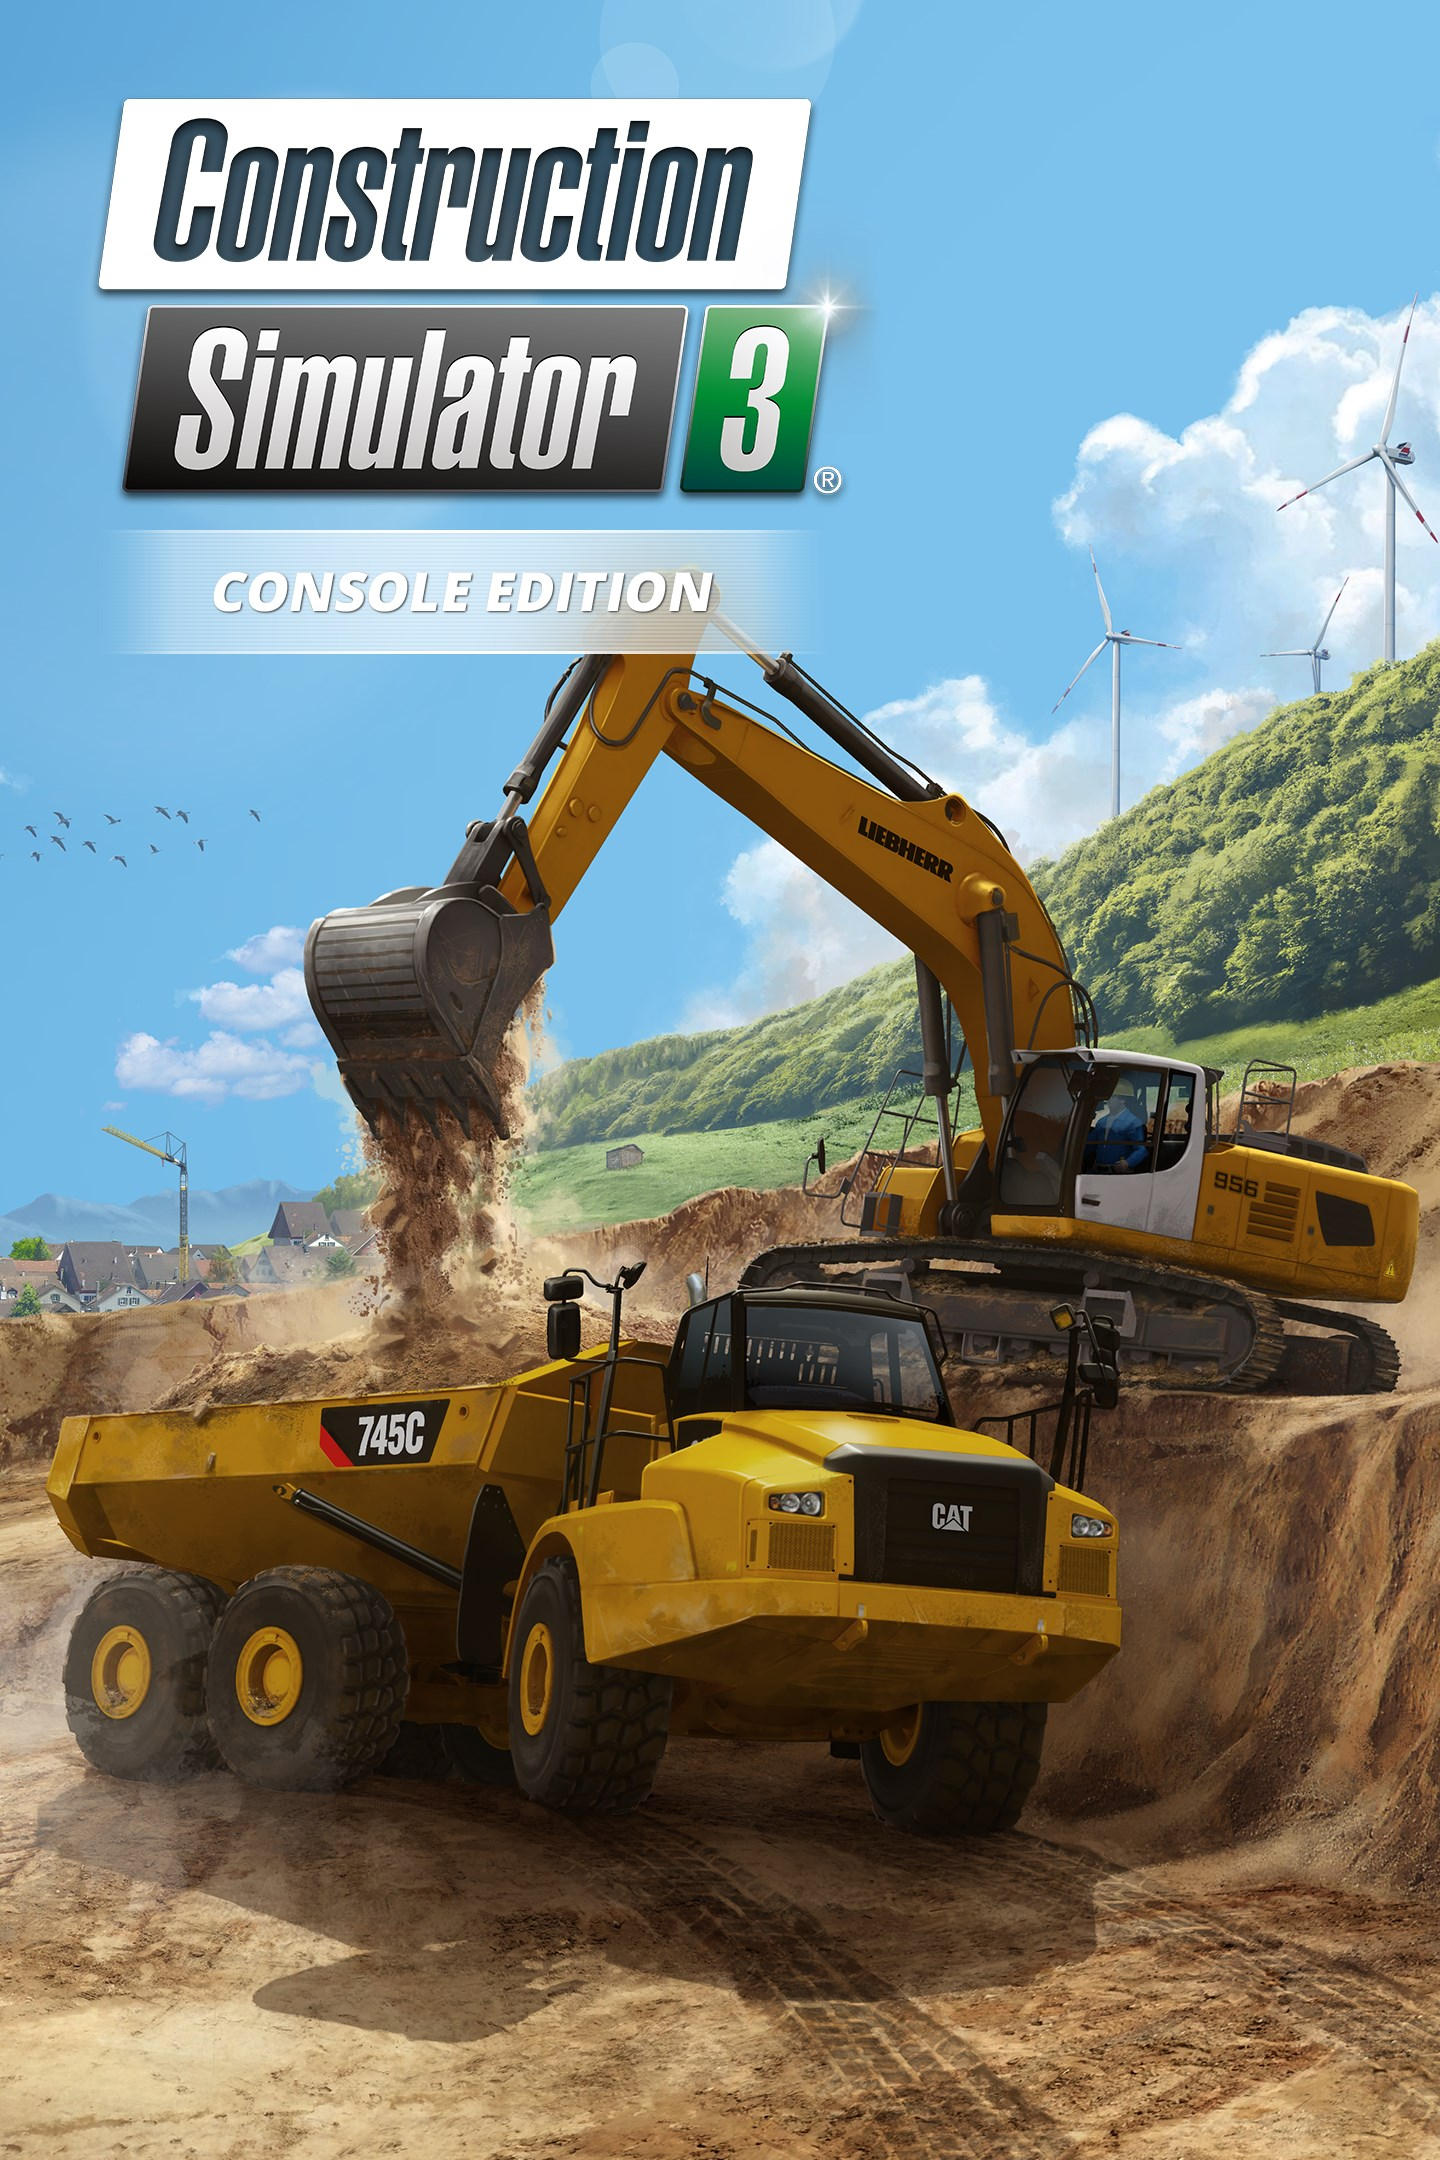 Construction Simulator 3 Pc : construction, simulator, Construction, Simulator, Console, Edition, Microsoft, Store, En-IN